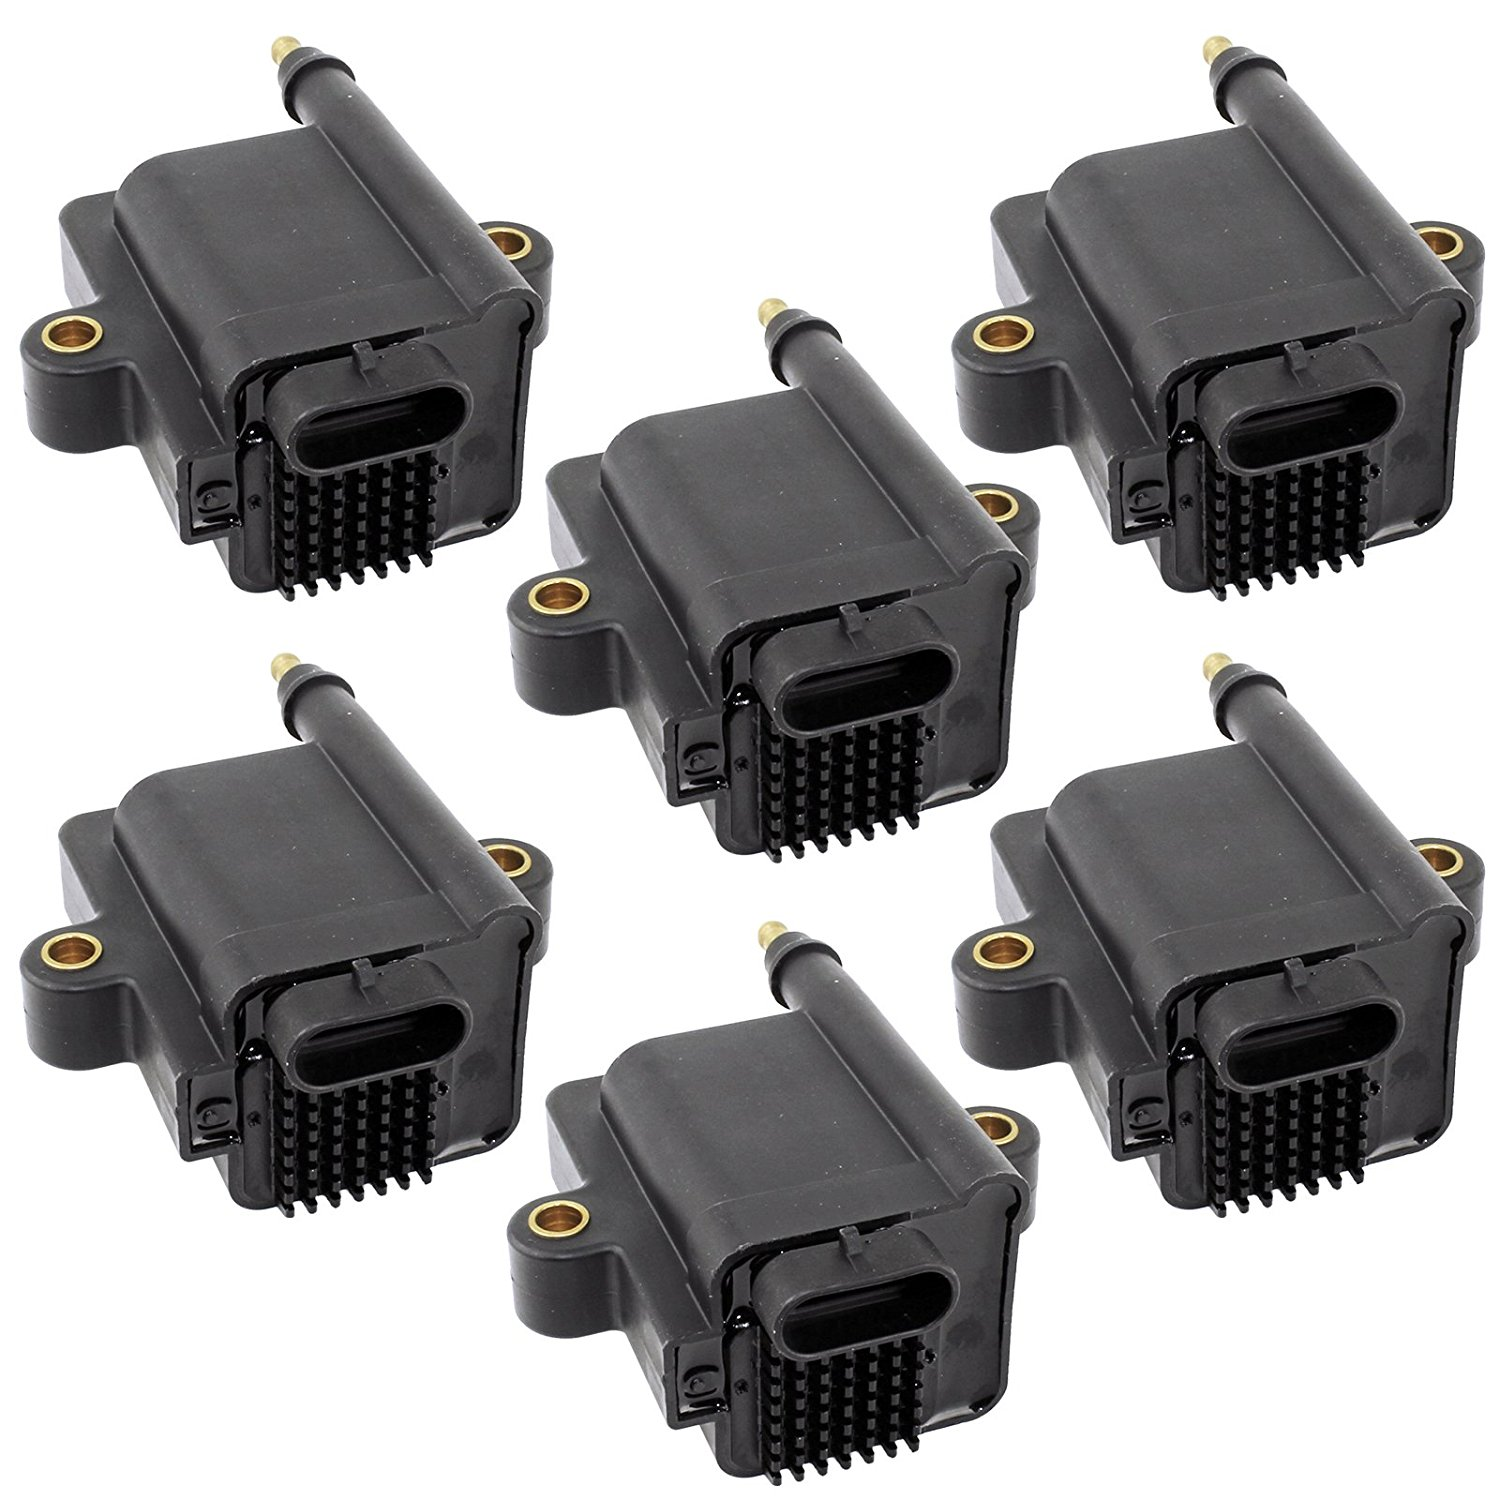 CALTRIC 6-PACK IGNITION COILS Fits MERCURY OUTBOARD 250 250HP XL CXL XXL CXXL 2007 2008